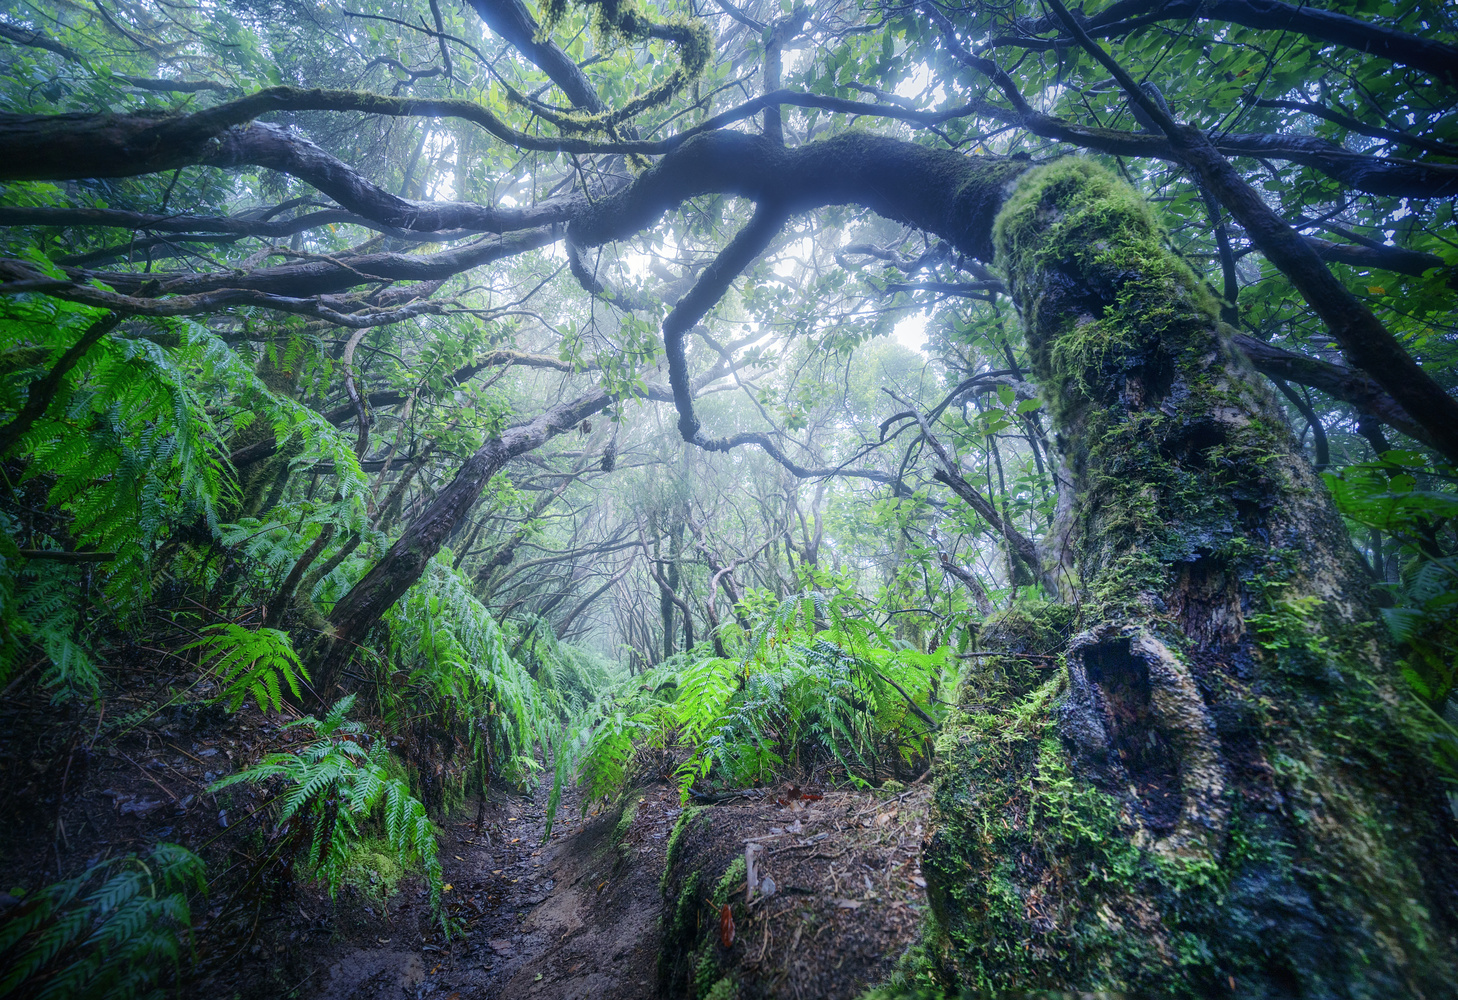 The Enchanted Forest by DaniGviews /Daniel